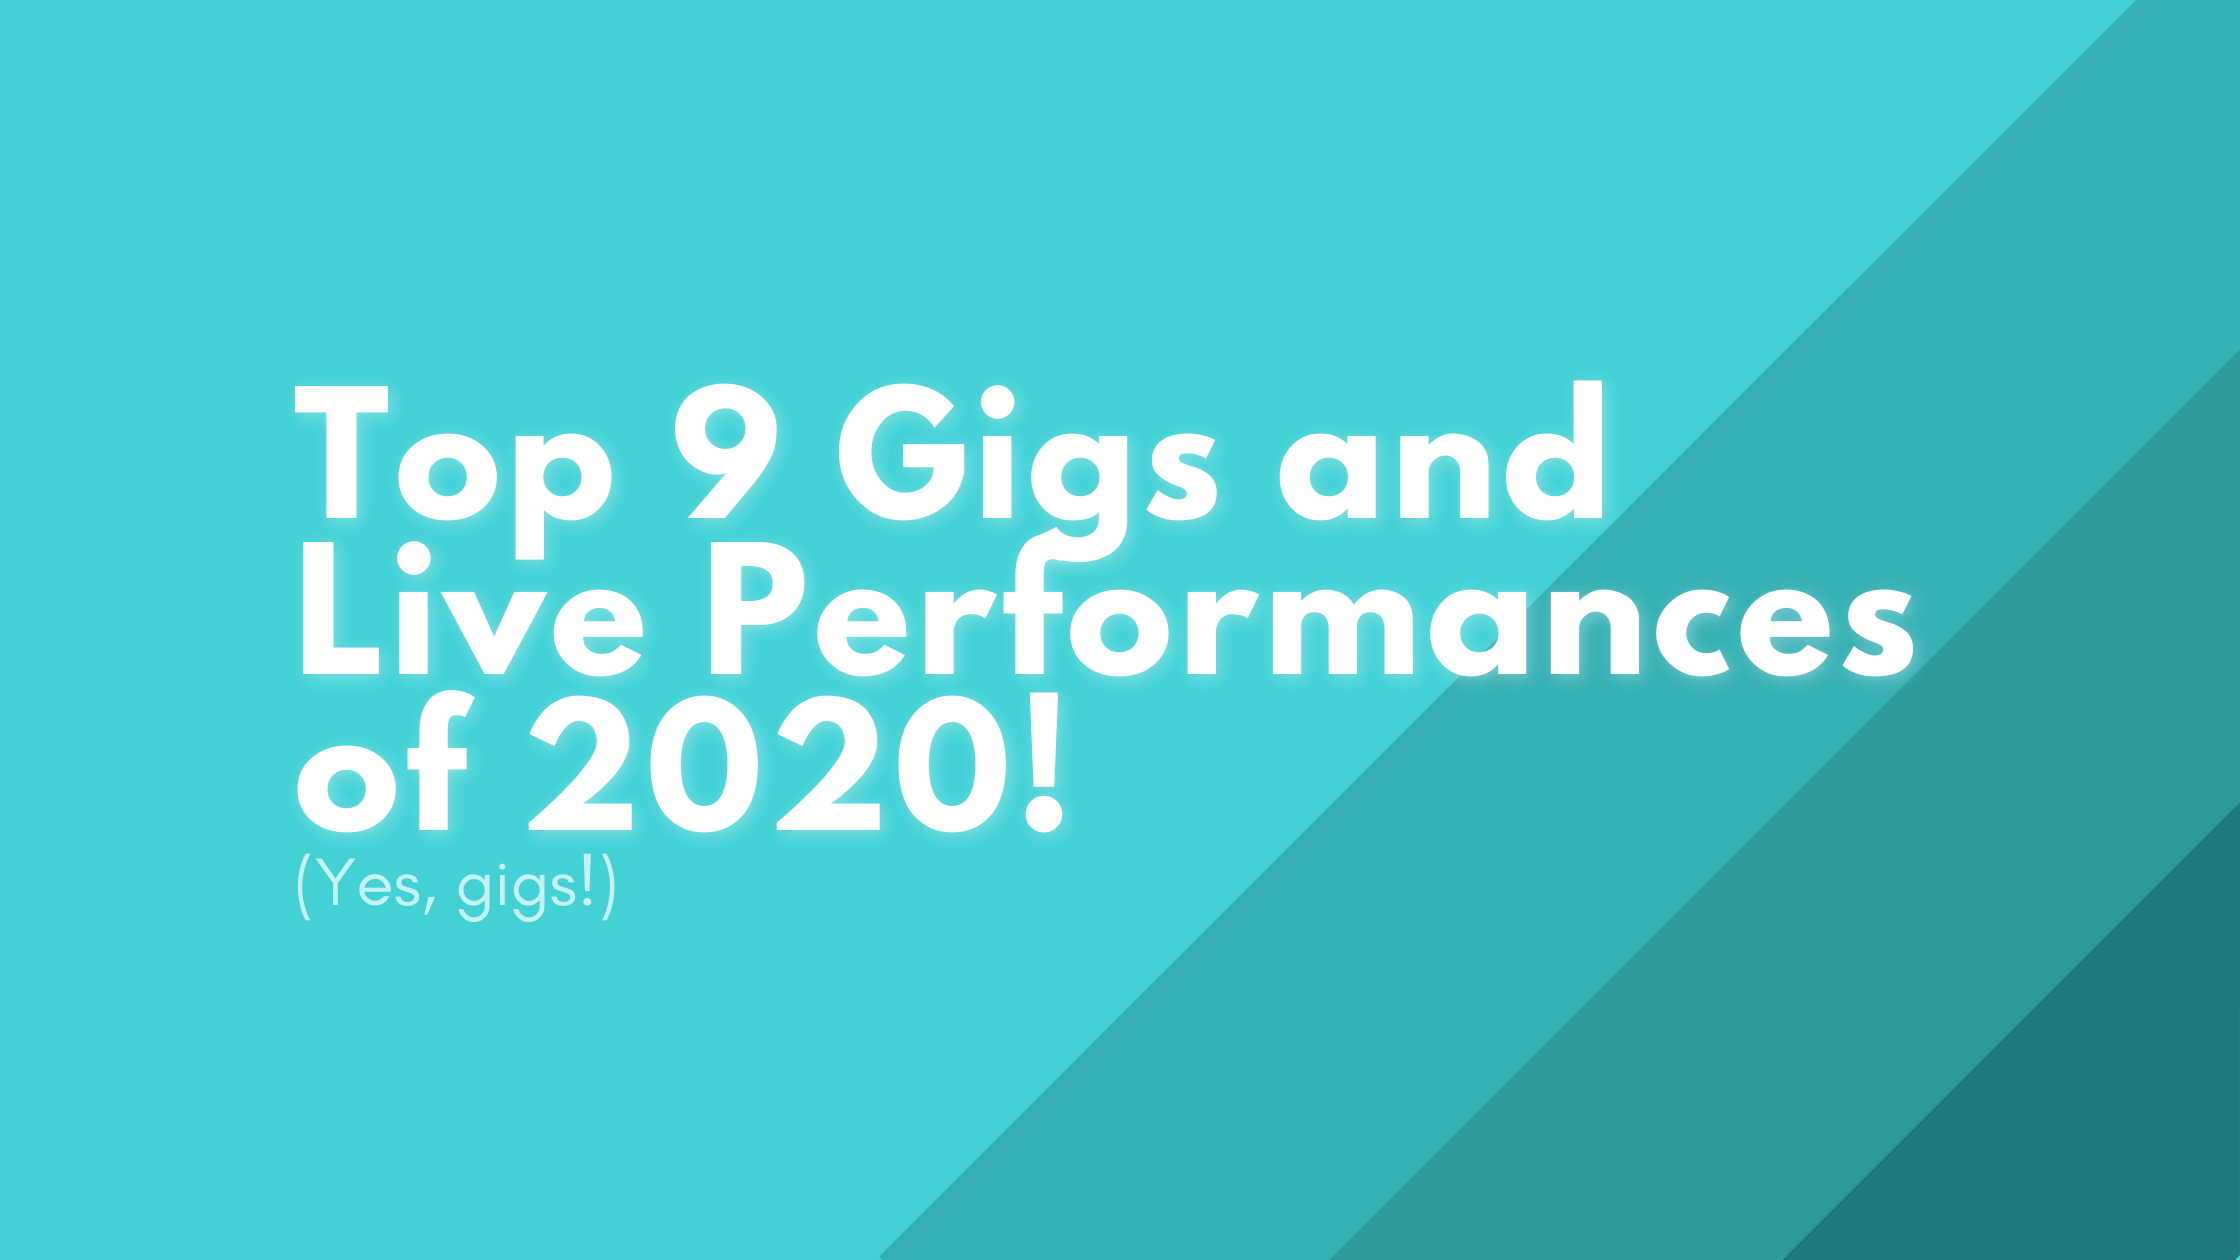 Top 9 Gigs and Live Performances of 2020!